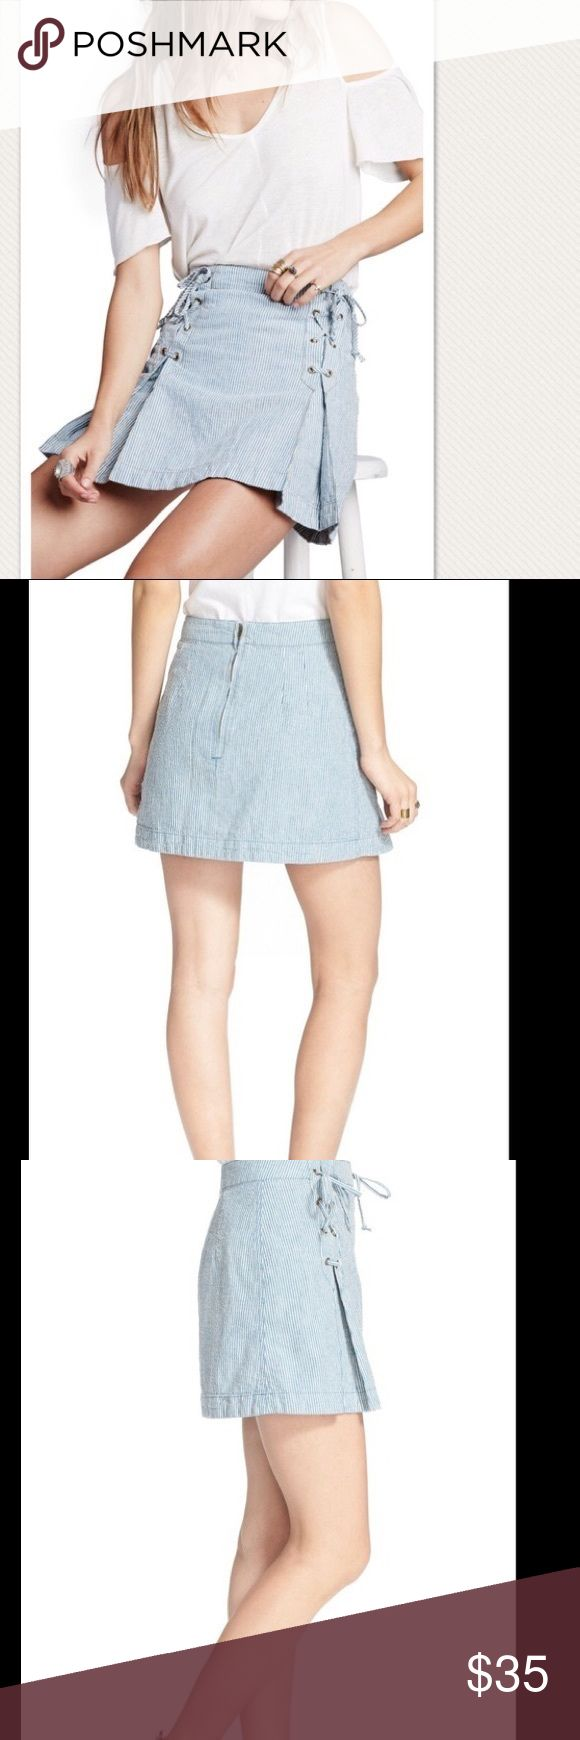 NWT Free People Railroad Striped Mini Skirt Flirty lace-up detailing accents the dimensional front pleats of a sunshine-ready miniskirt crafted from a breezy, railroad-striped blend of cotton and linen. Lined. 55% cotton, 45% linen. #108 Manufacturer: Free People Size: 6 Size Origin: US Manufacturer Color: Blue Combo Retail: $88.00 Condition: New with tags Collection: Free People Bottom Closure: Exposed Back Zipper Length: Mini Total Skirt Length: 15 1/2 Inches Waist Across: 14 Inches Hips…